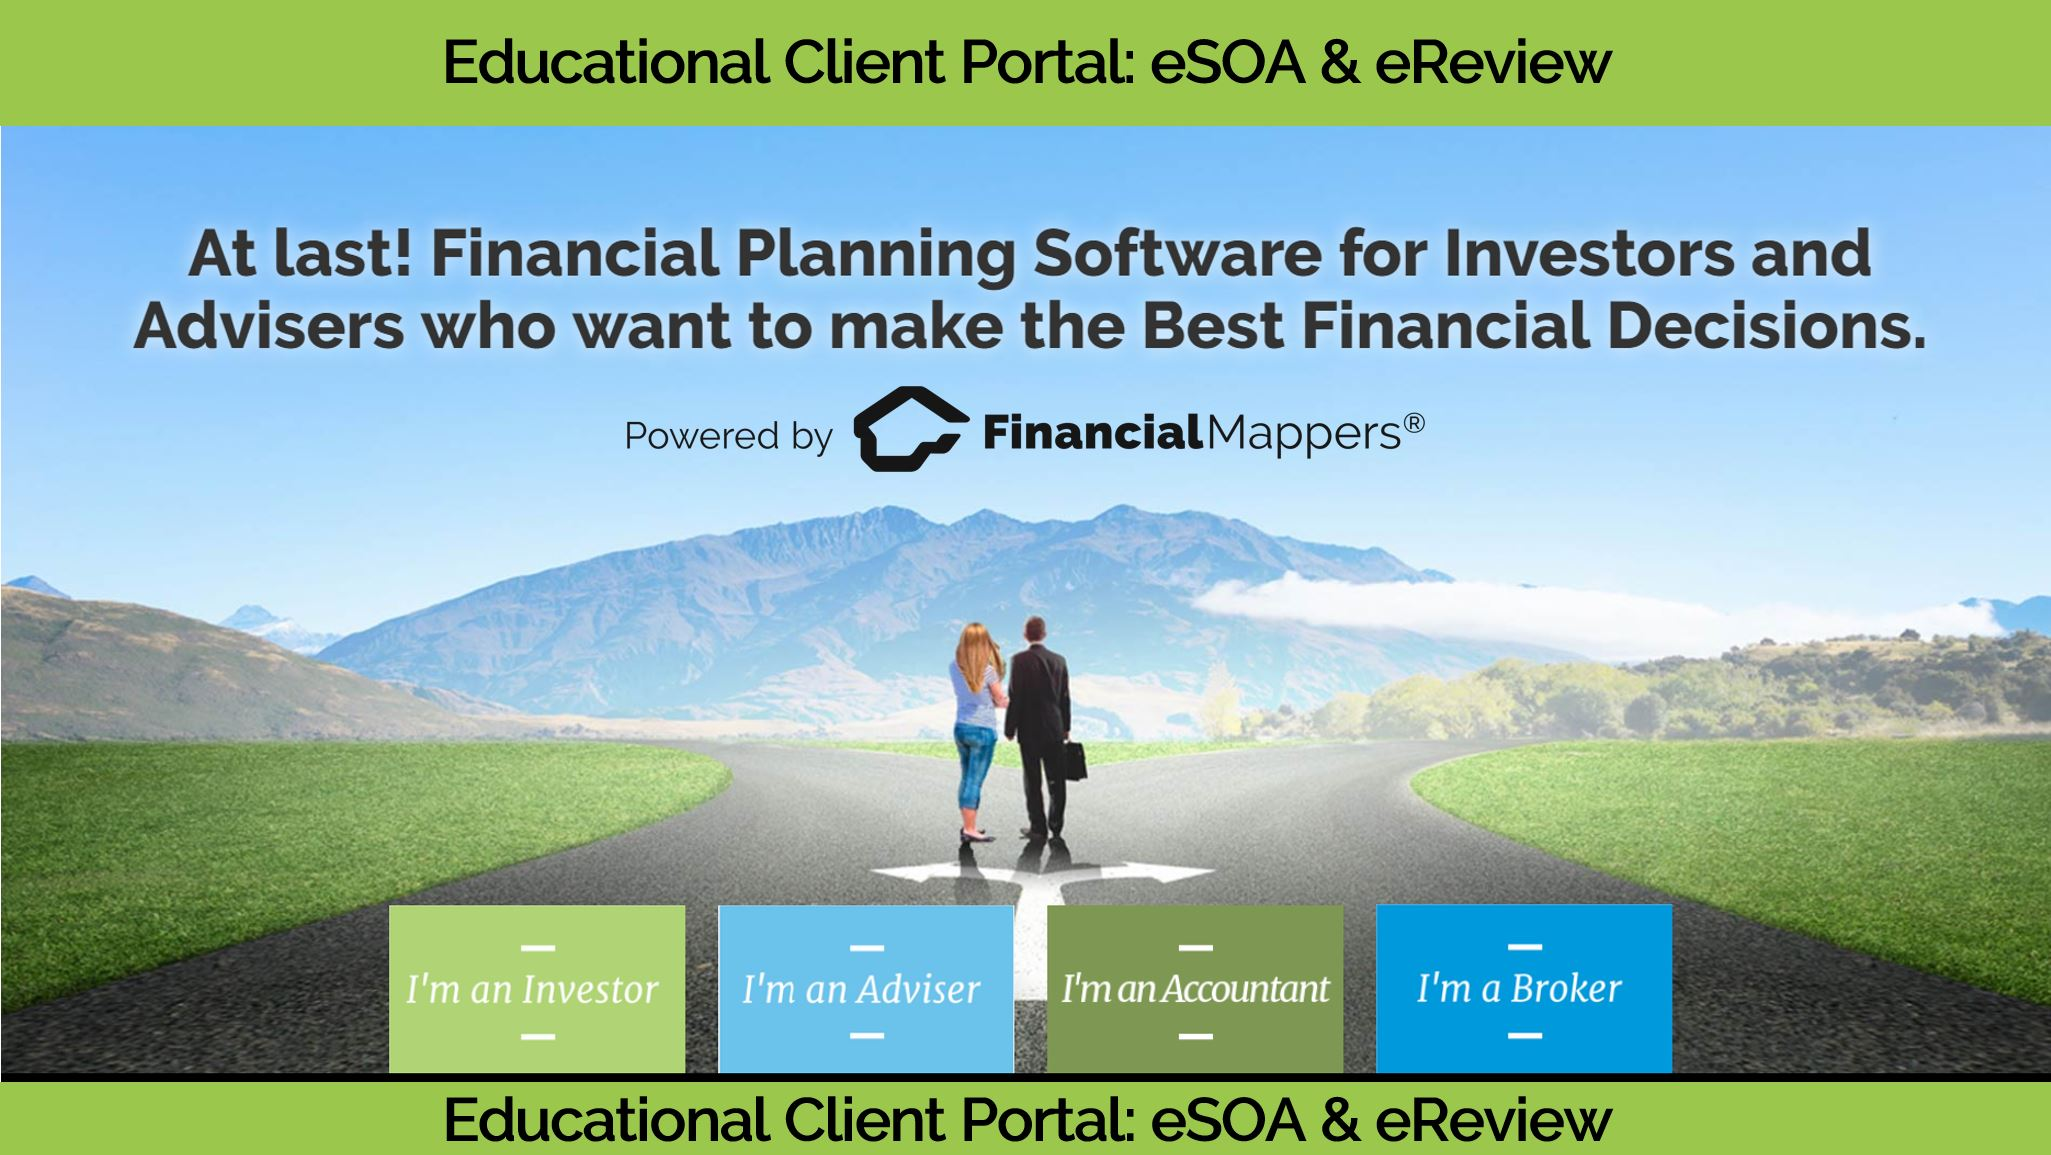 financial planning software for SOA